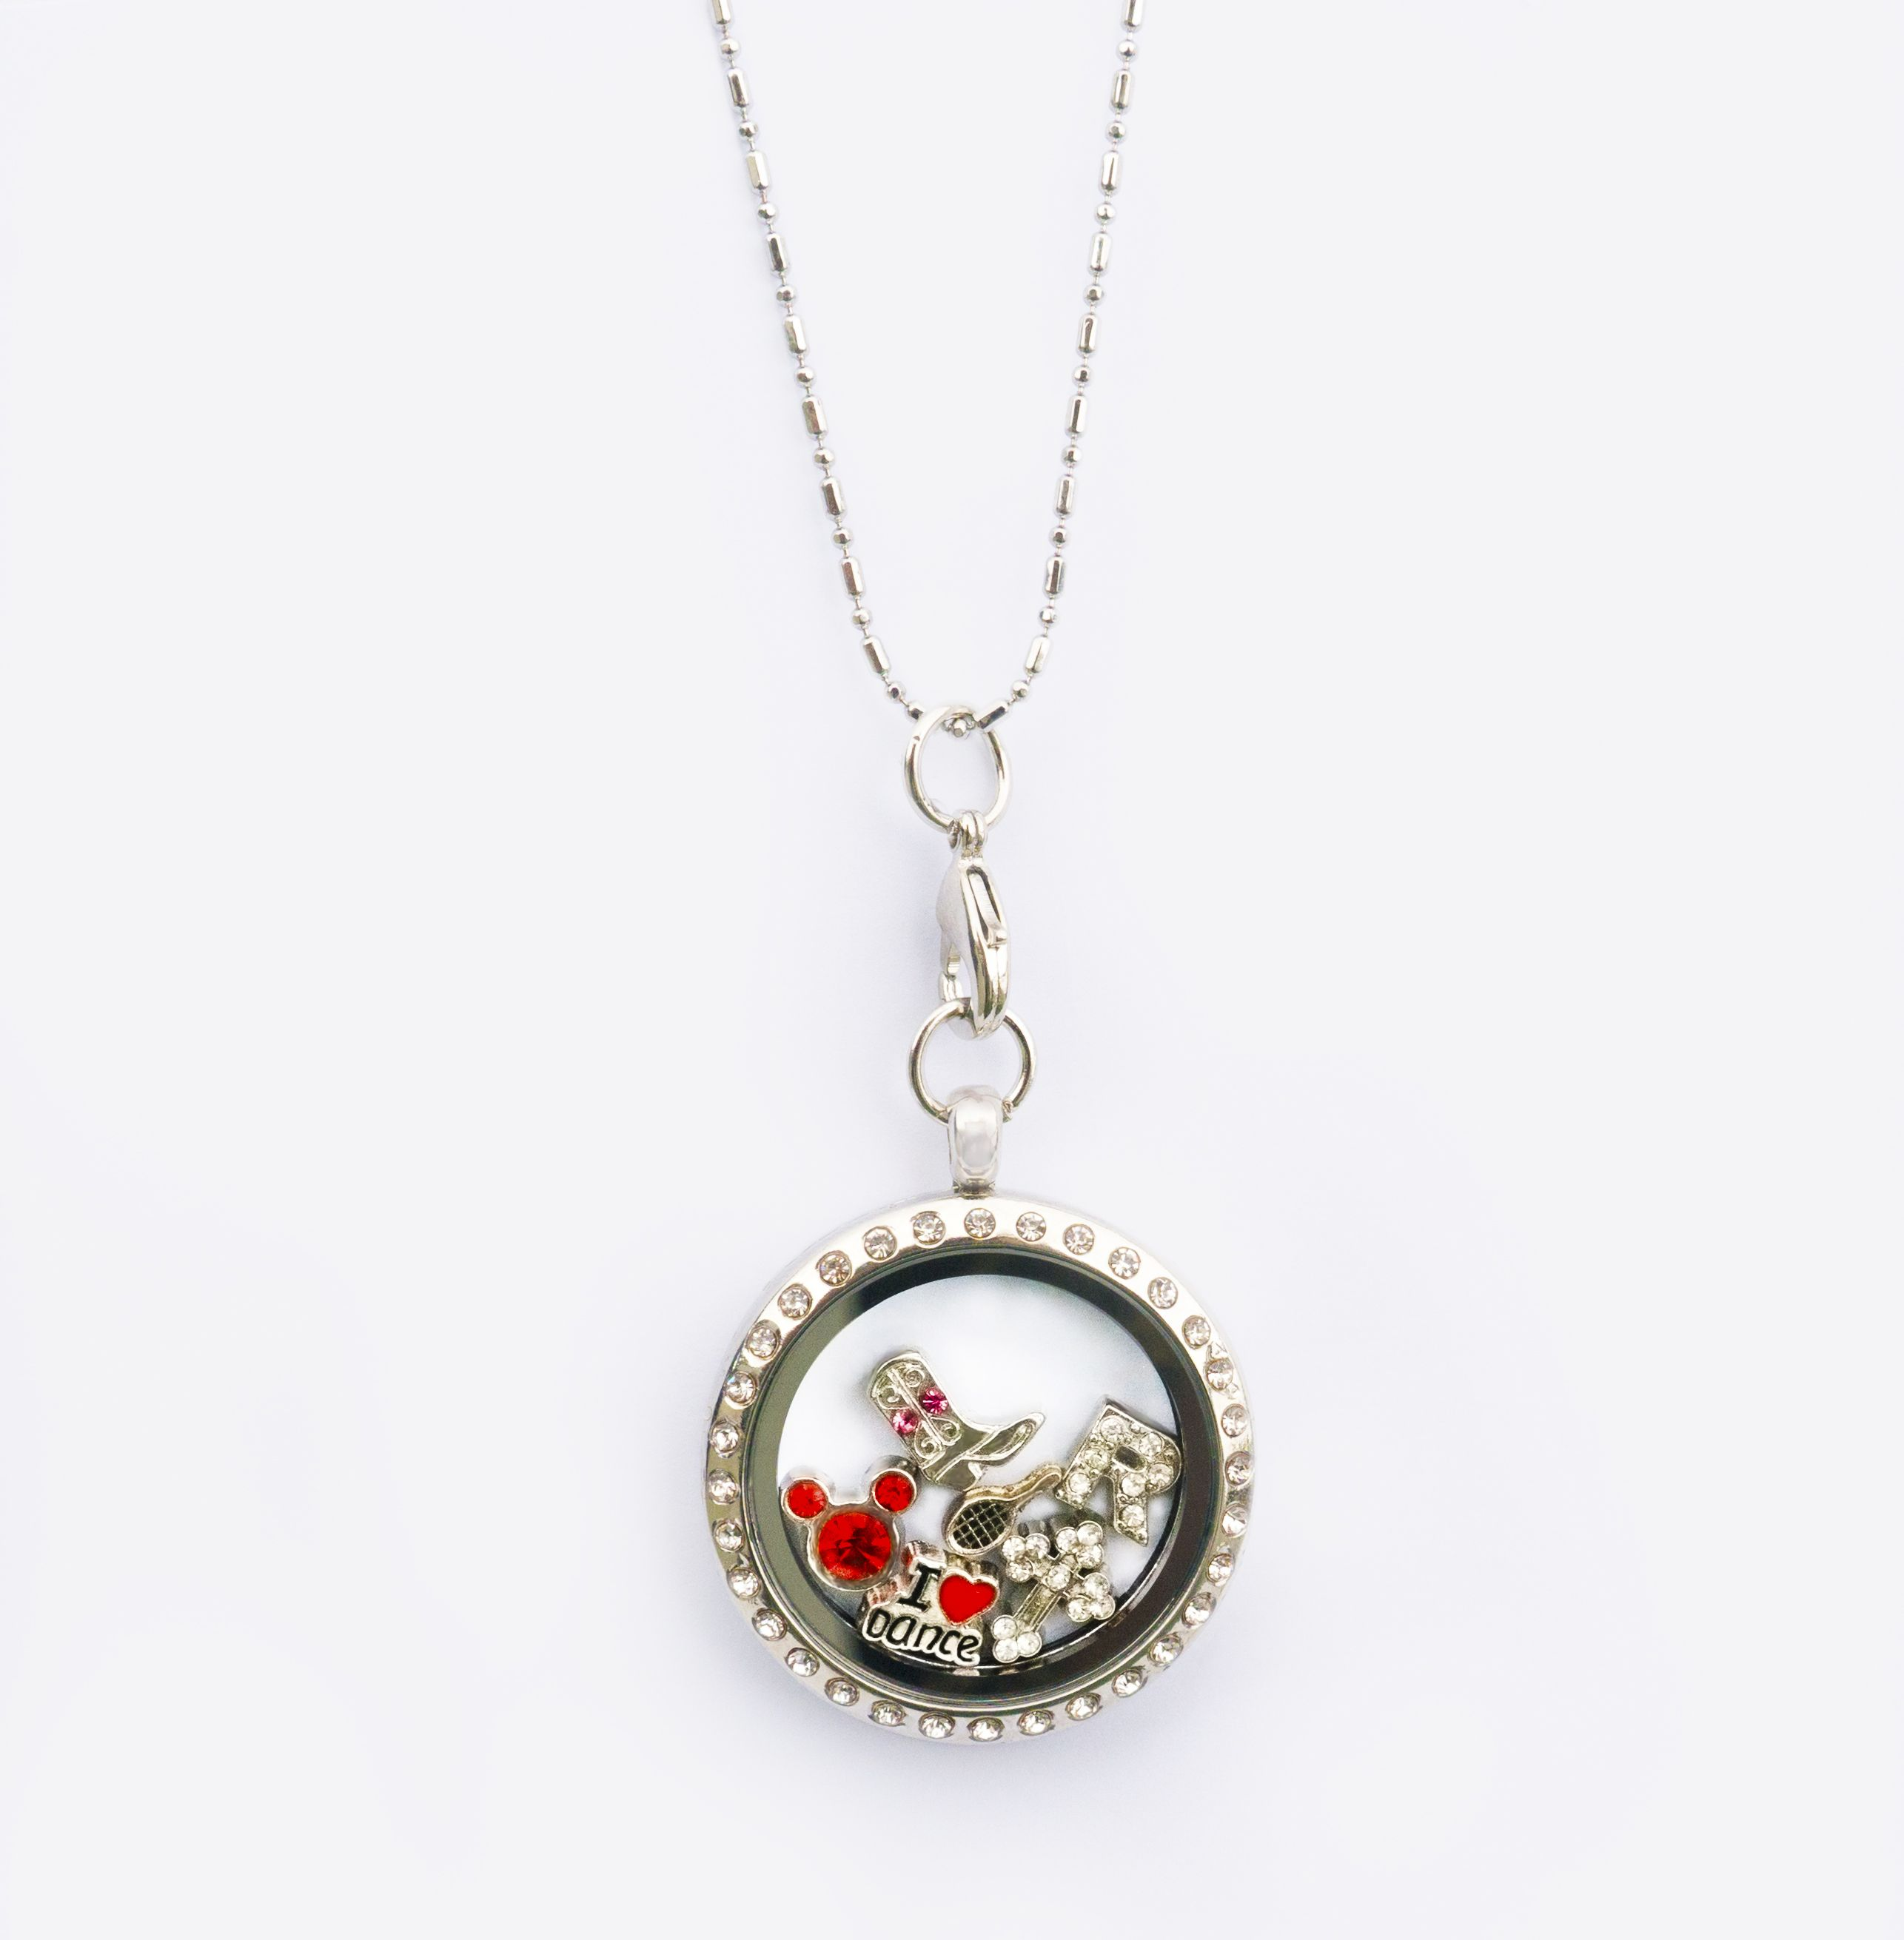 design lockets gram bracelet buy in price necklace with charm round gold detail floating product for grams designs